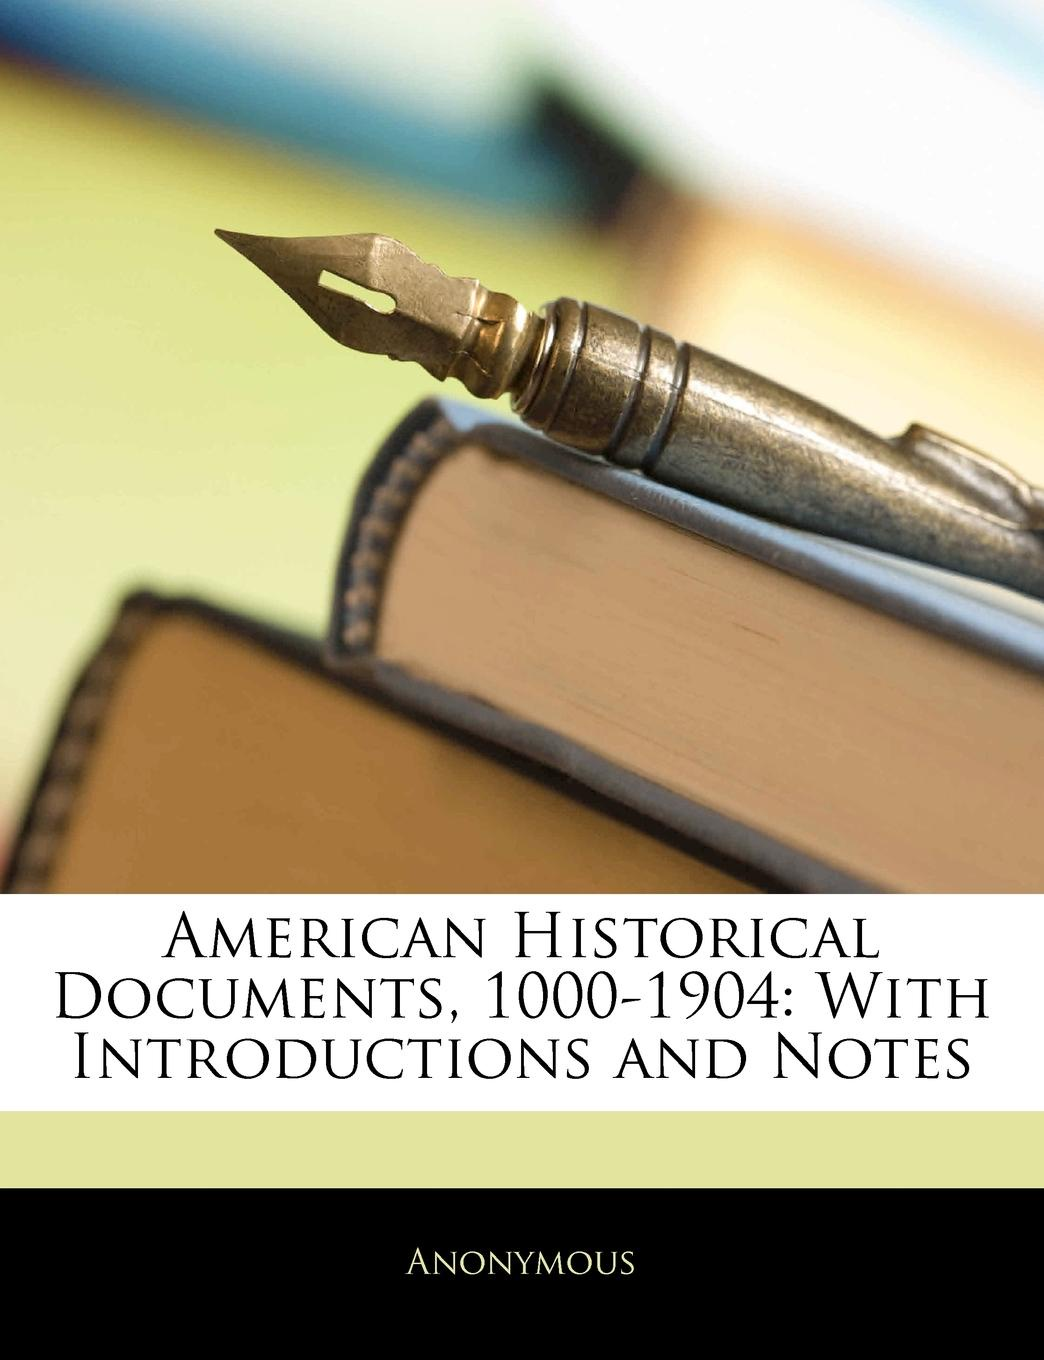 M. l'abbé Trochon American Historical Documents, 1000-1904. With Introductions and Notes